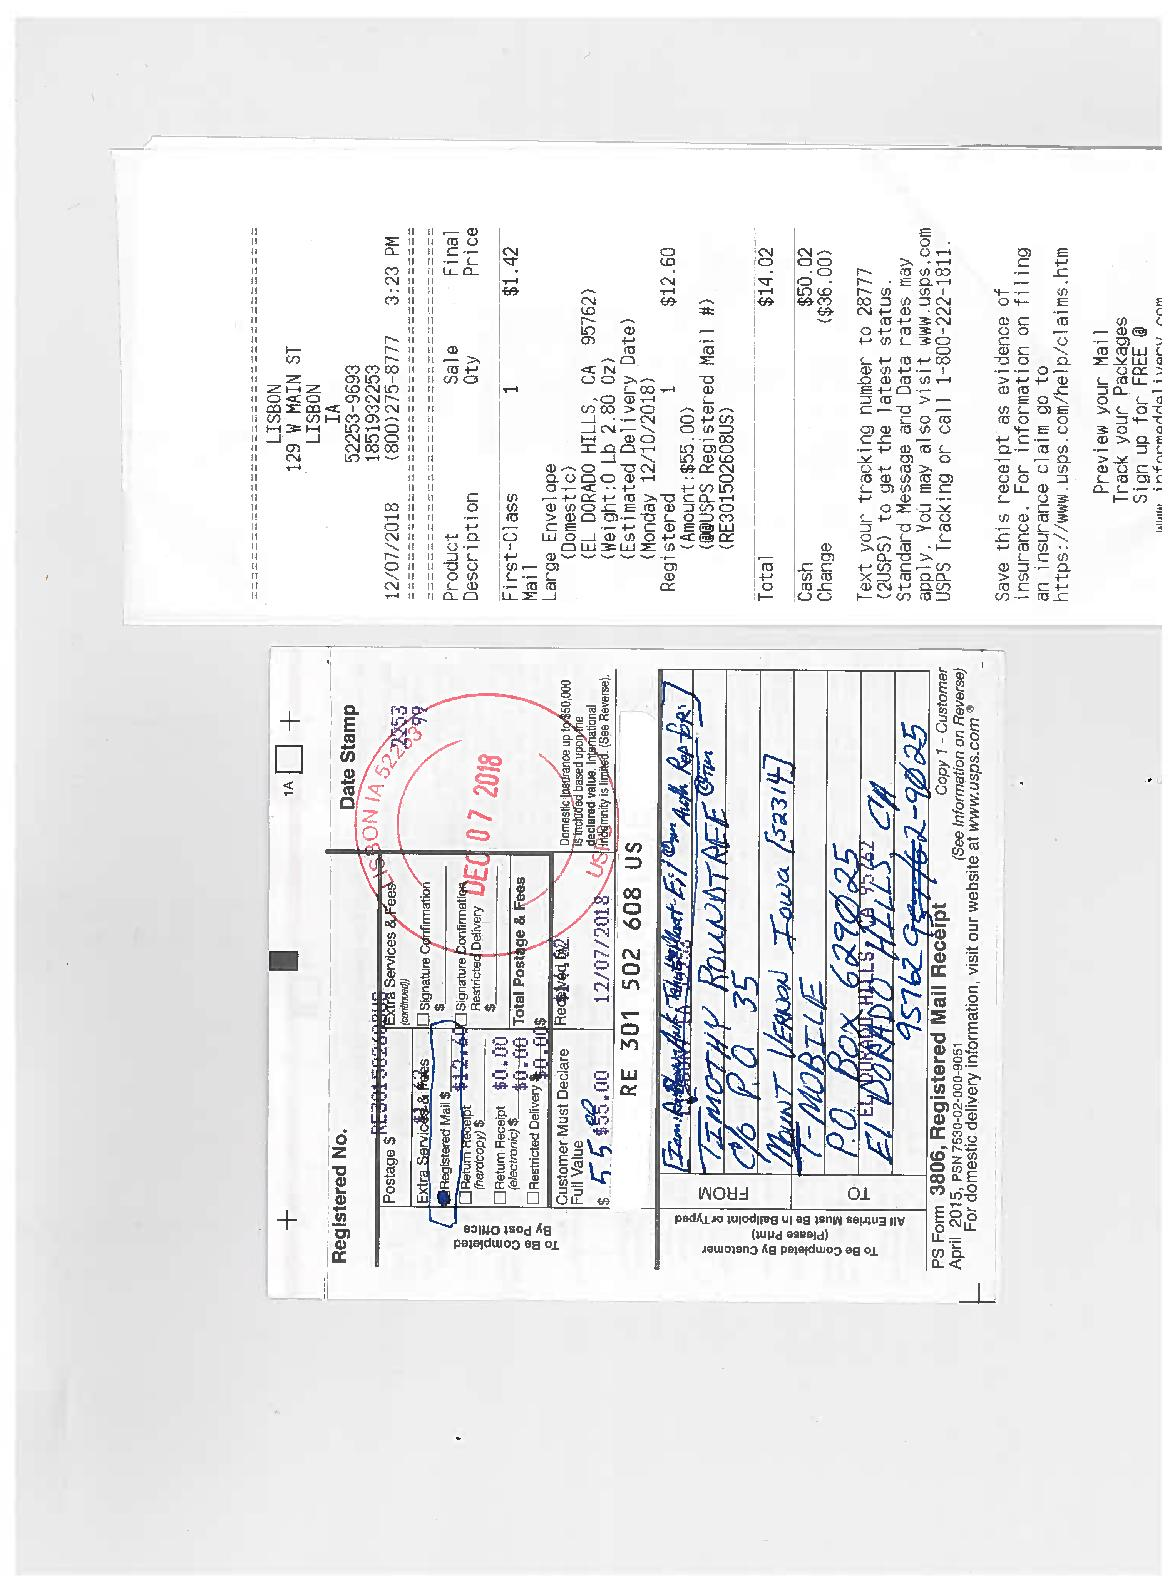 Calameo Second Affidavit Of Truth And Acceptance For Value To T